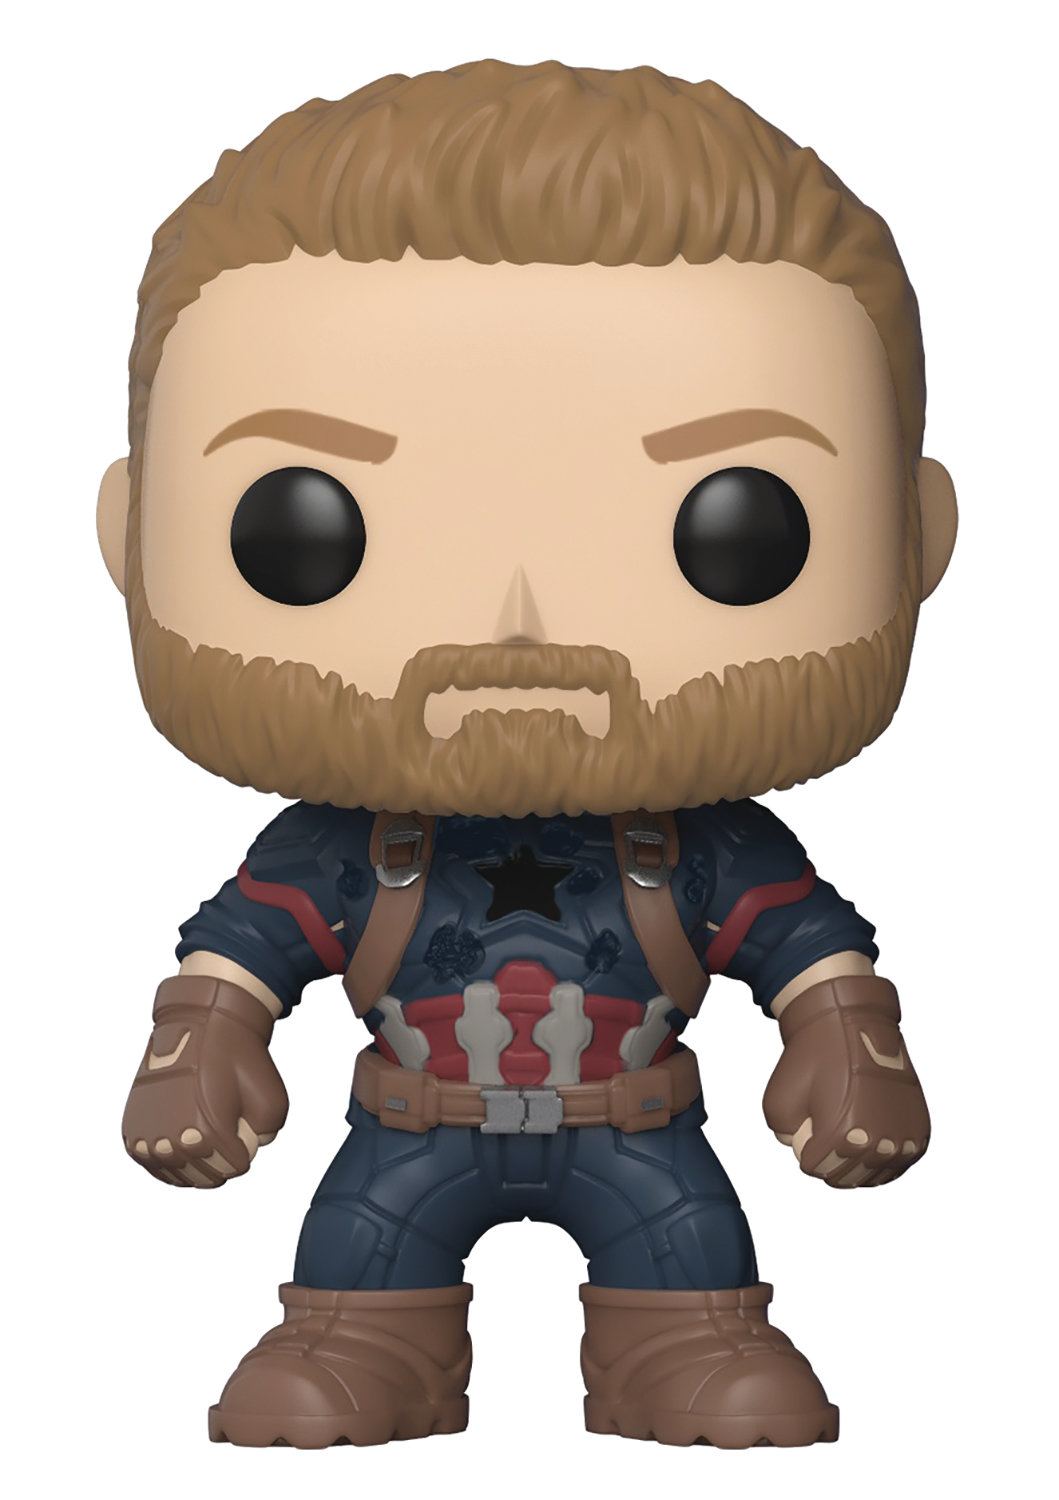 POP AVENGERS INFINITY WAR CAPTAIN AMERICA VINYL FIGURE